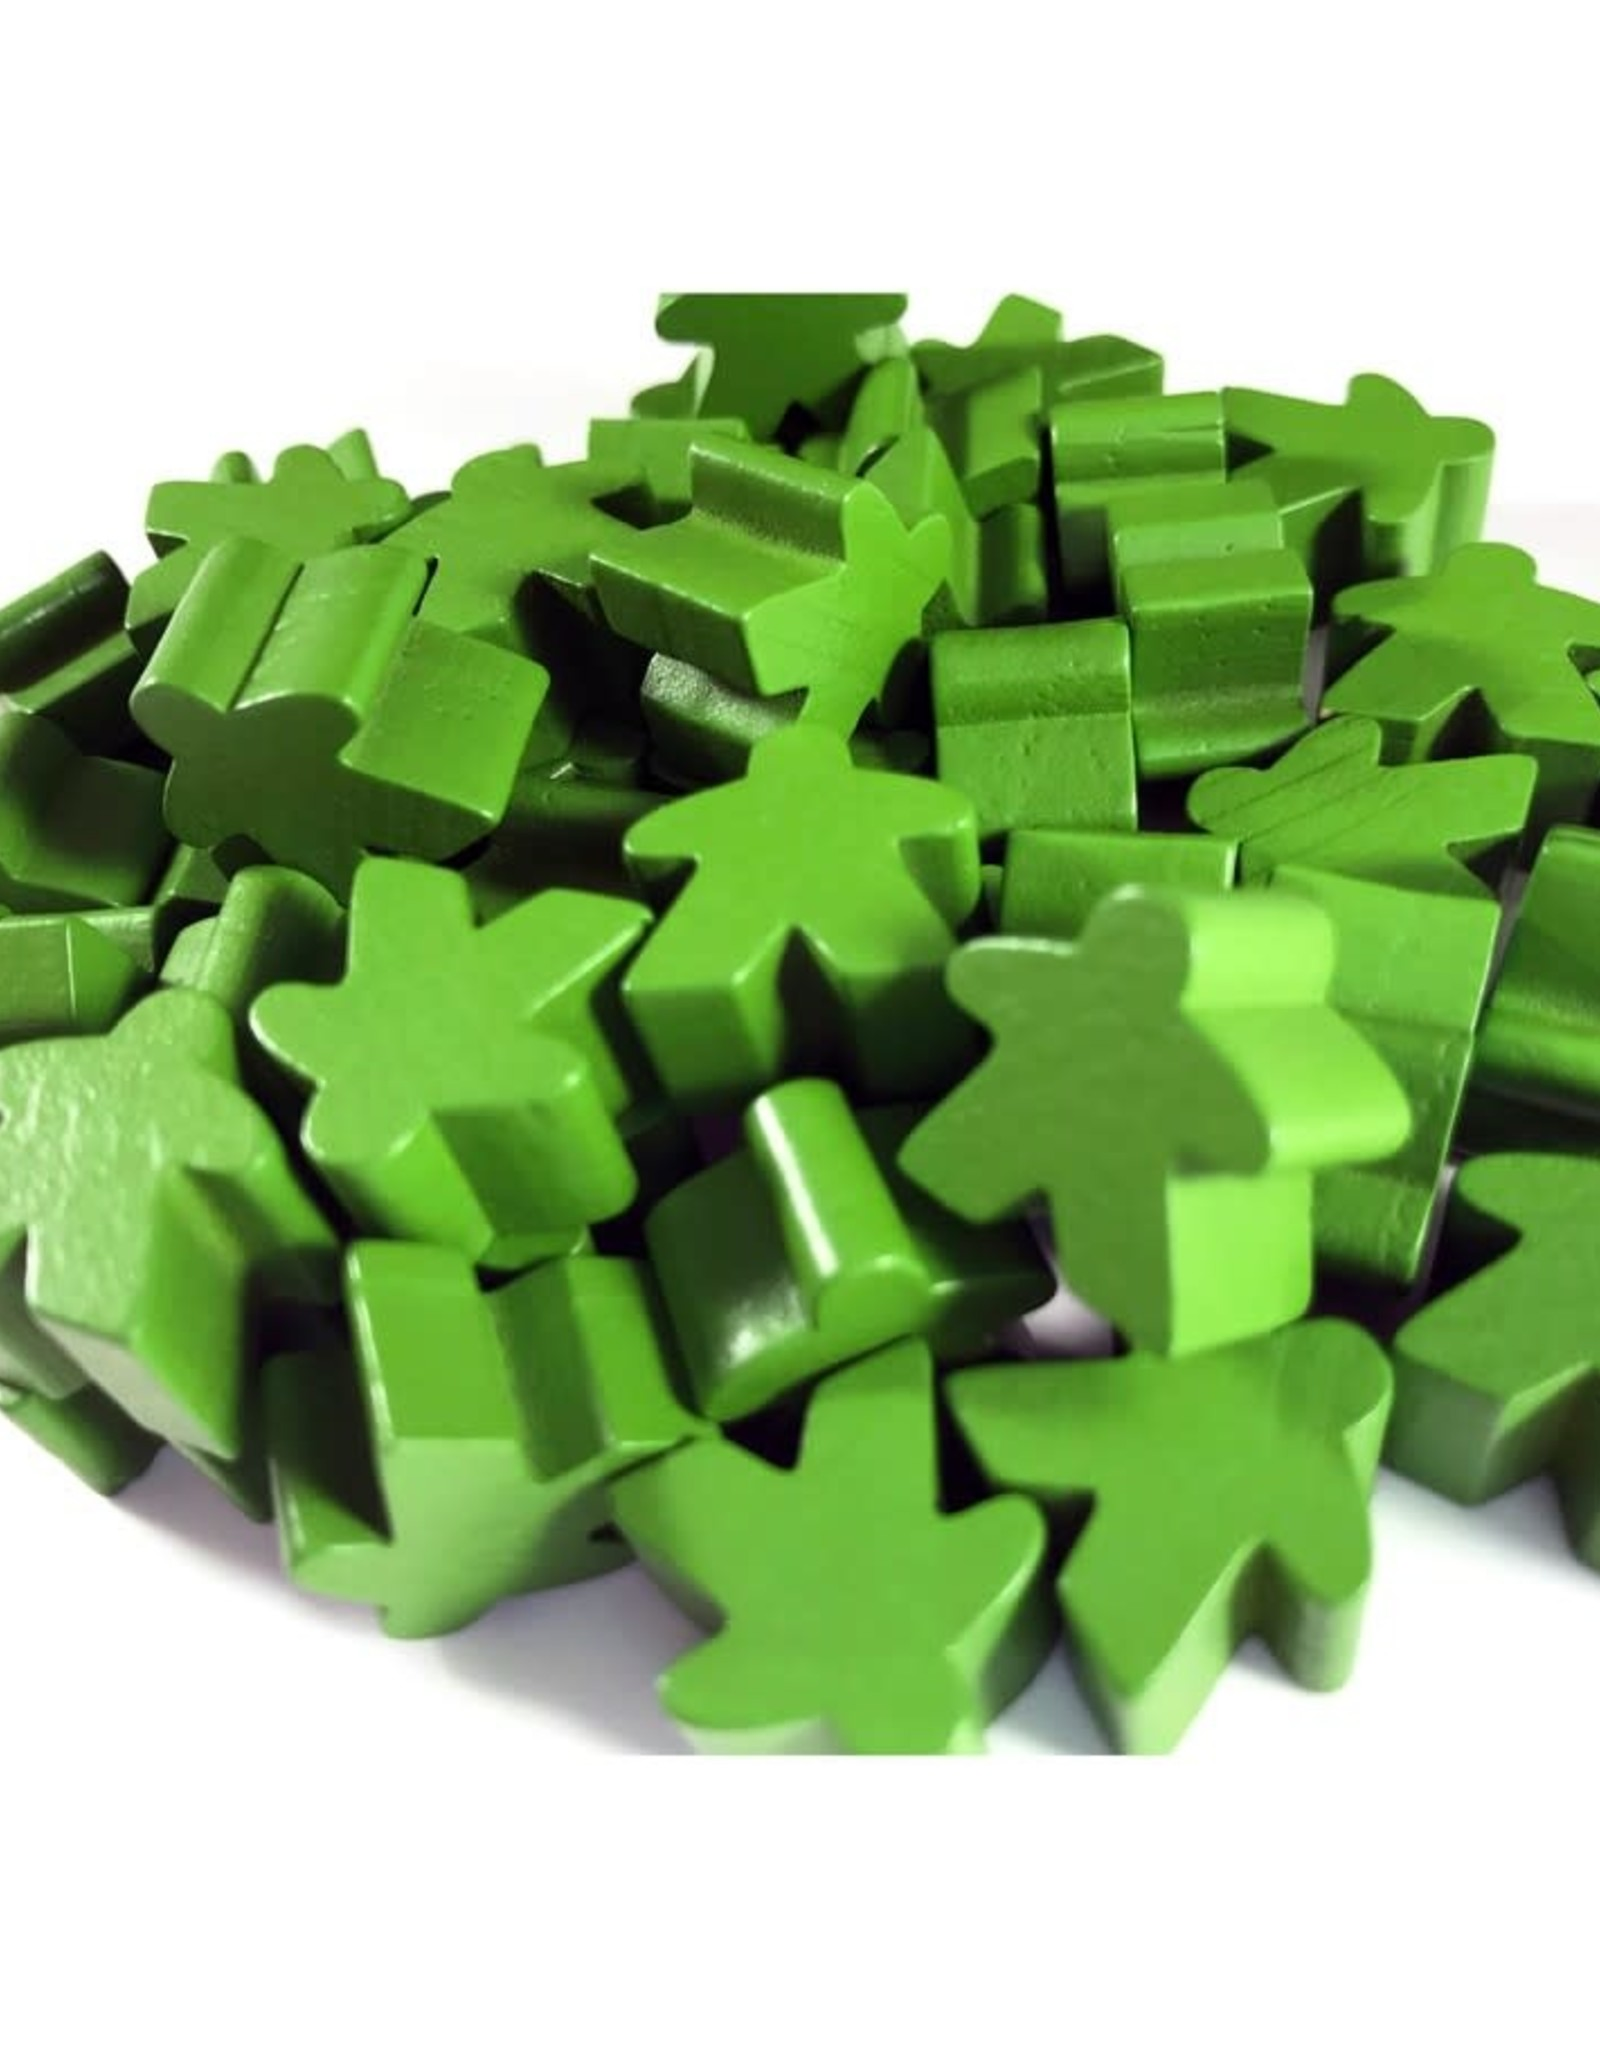 Apostrophe Games Wooden Meeples (50) Green